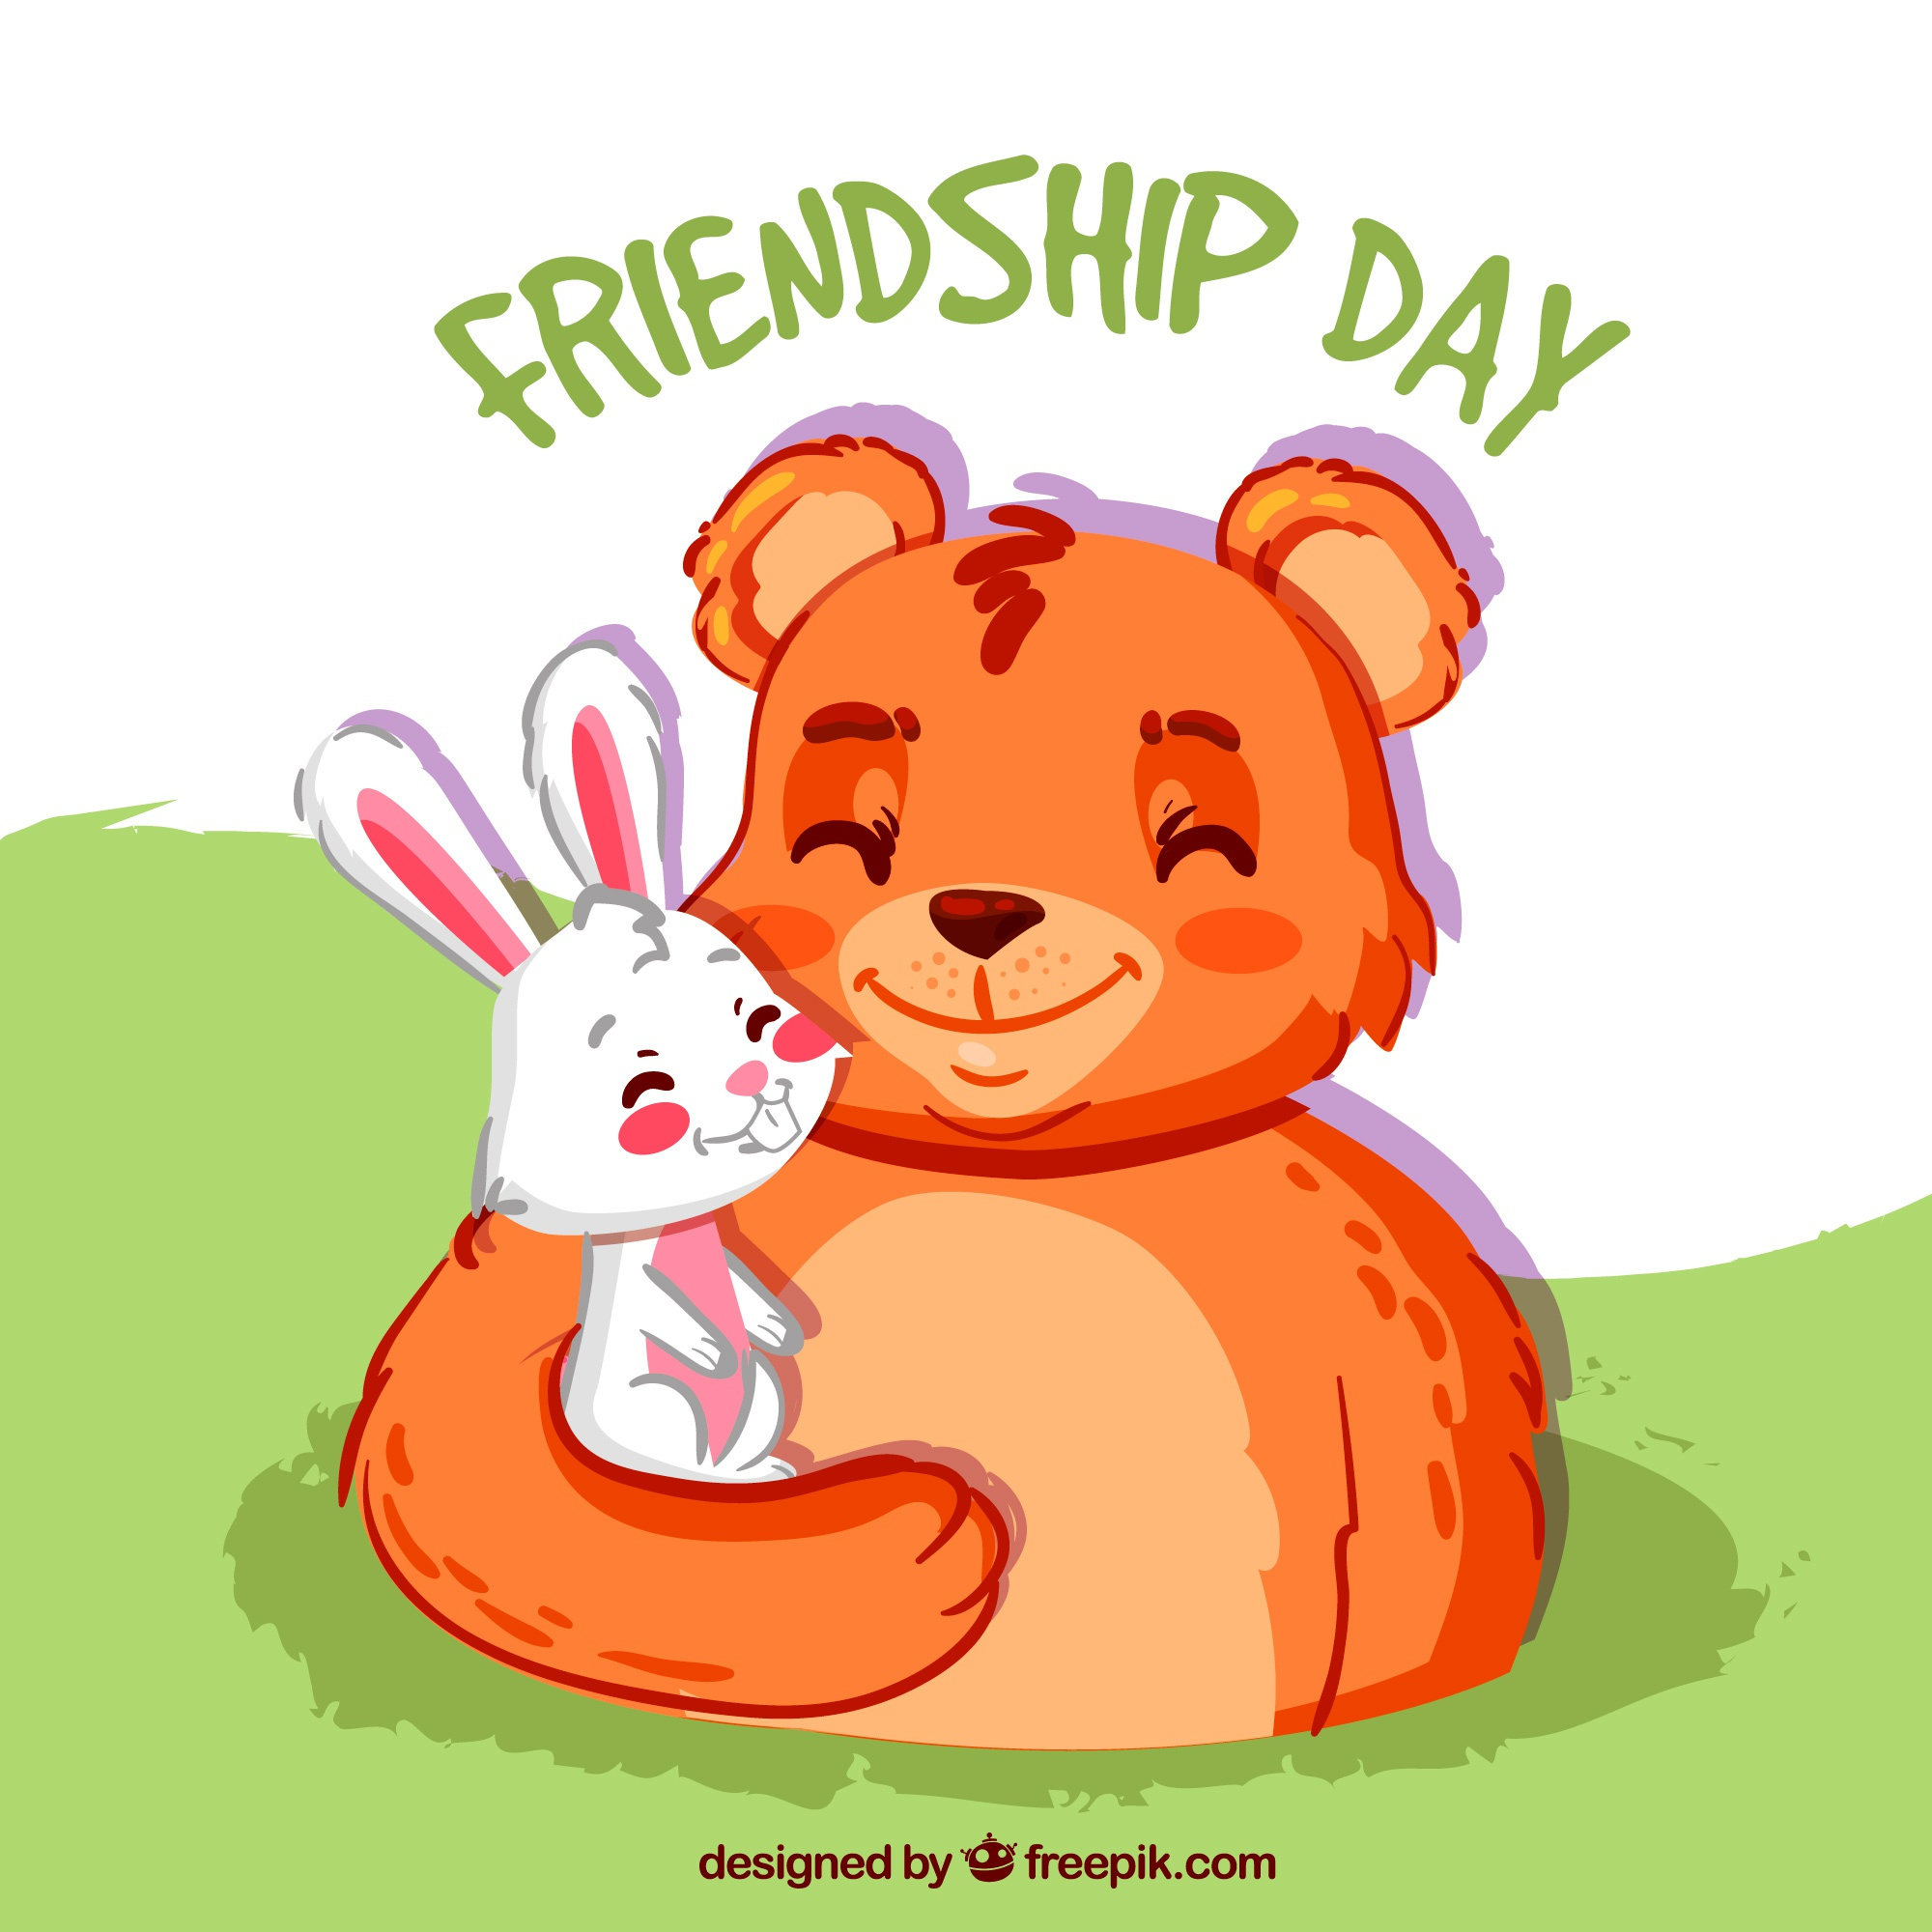 Friendship day background with bear and rabbit